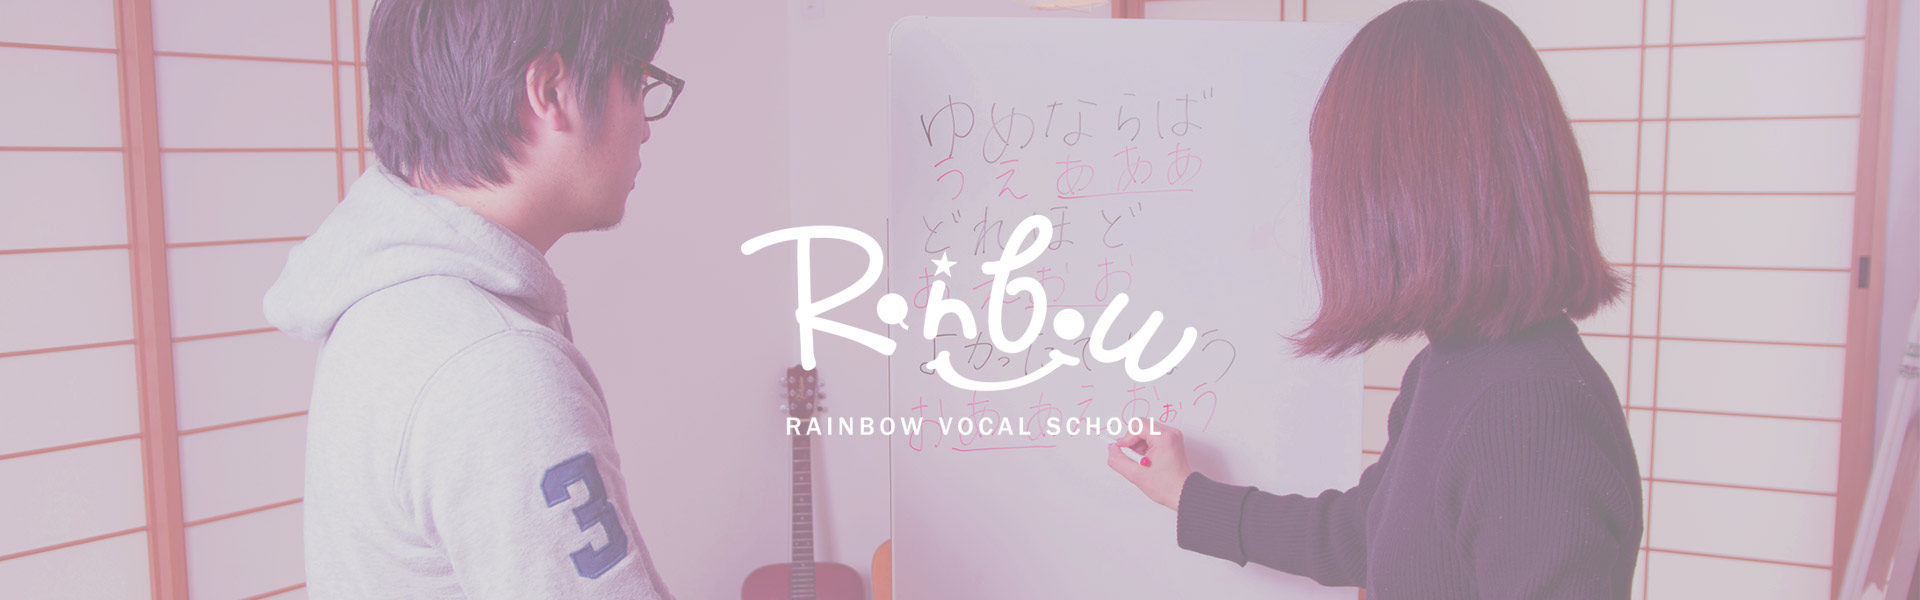 Rainbow Vocal School